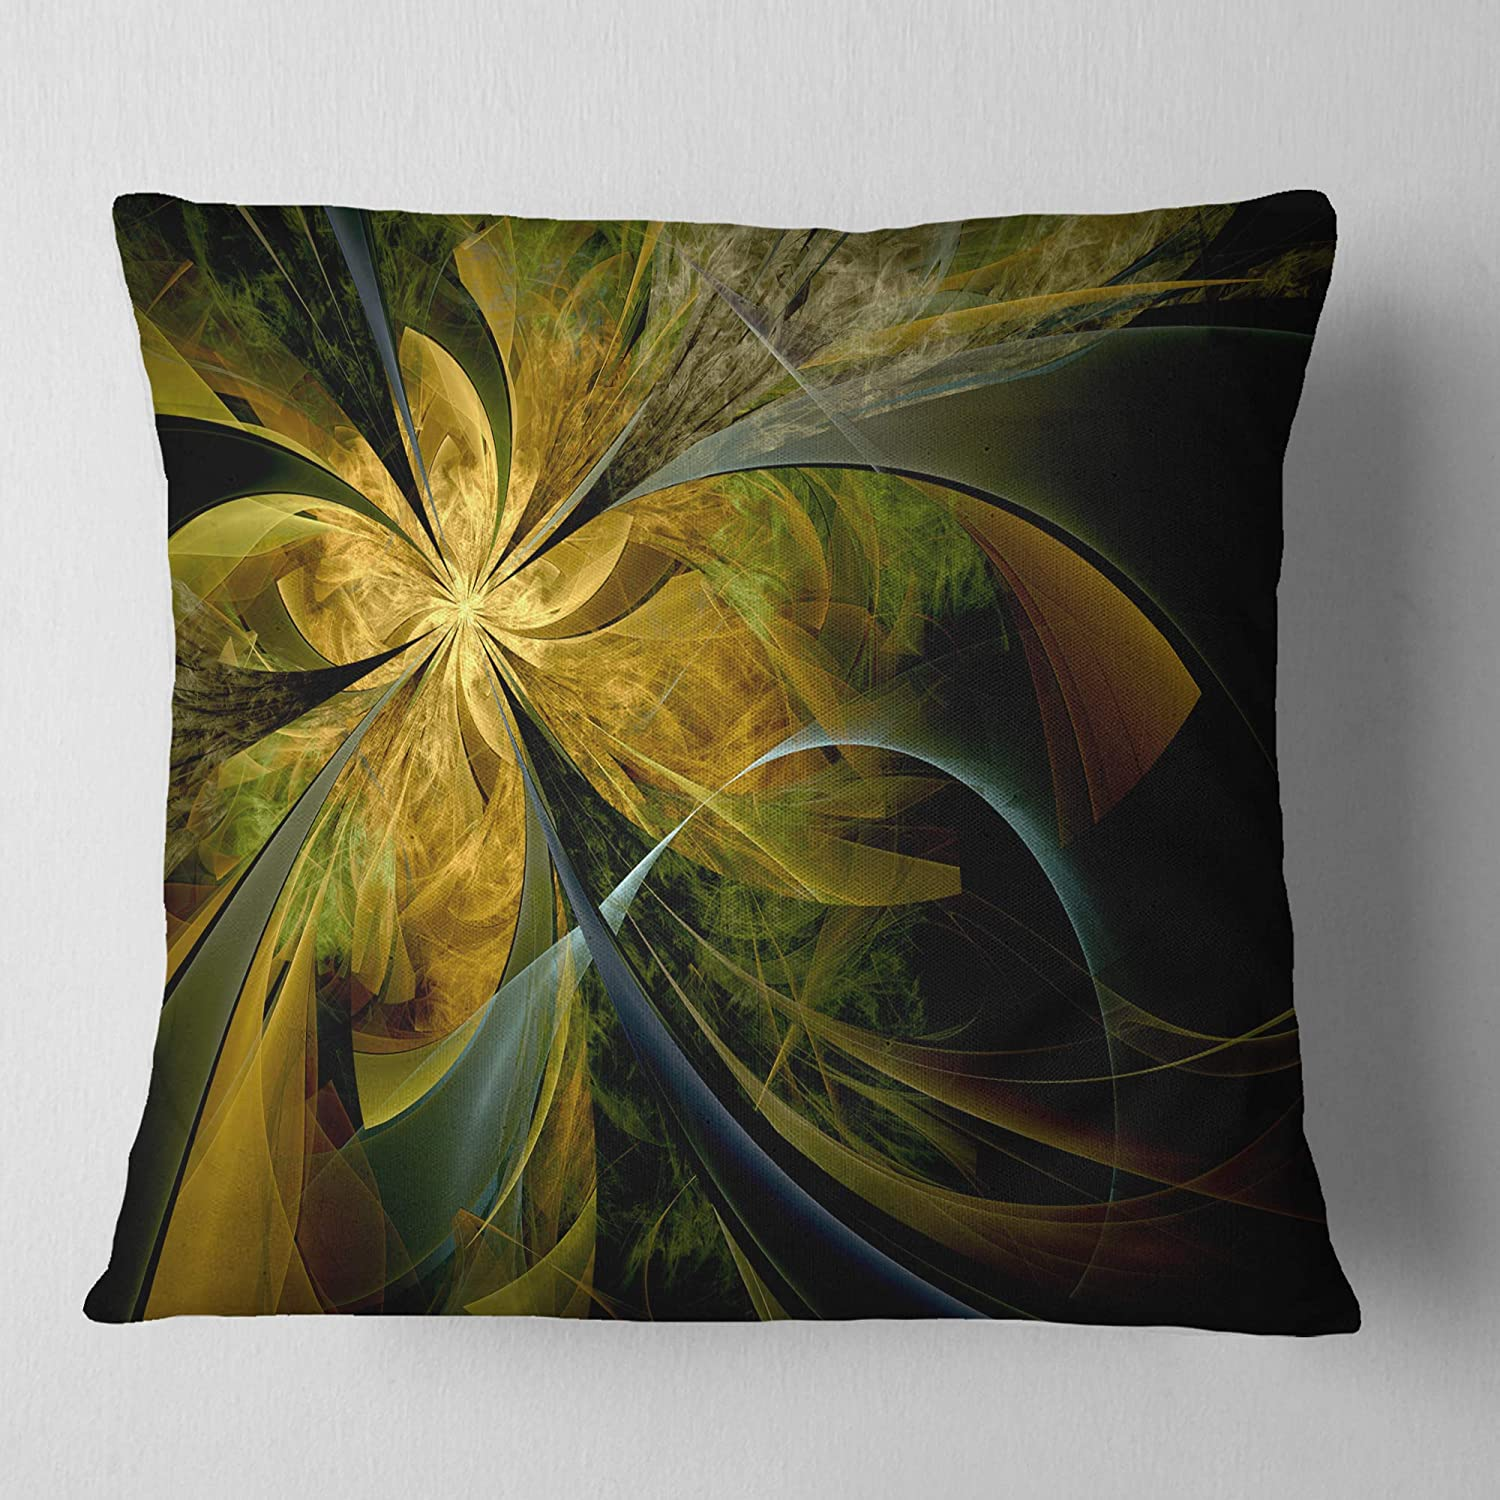 Designart CU11996-26-26 Symmetrical Fractal Flower in Gold Floral Cushion Cover for Living Room x 26 in Insert Printed On Both Side in Sofa Throw Pillow 26 in